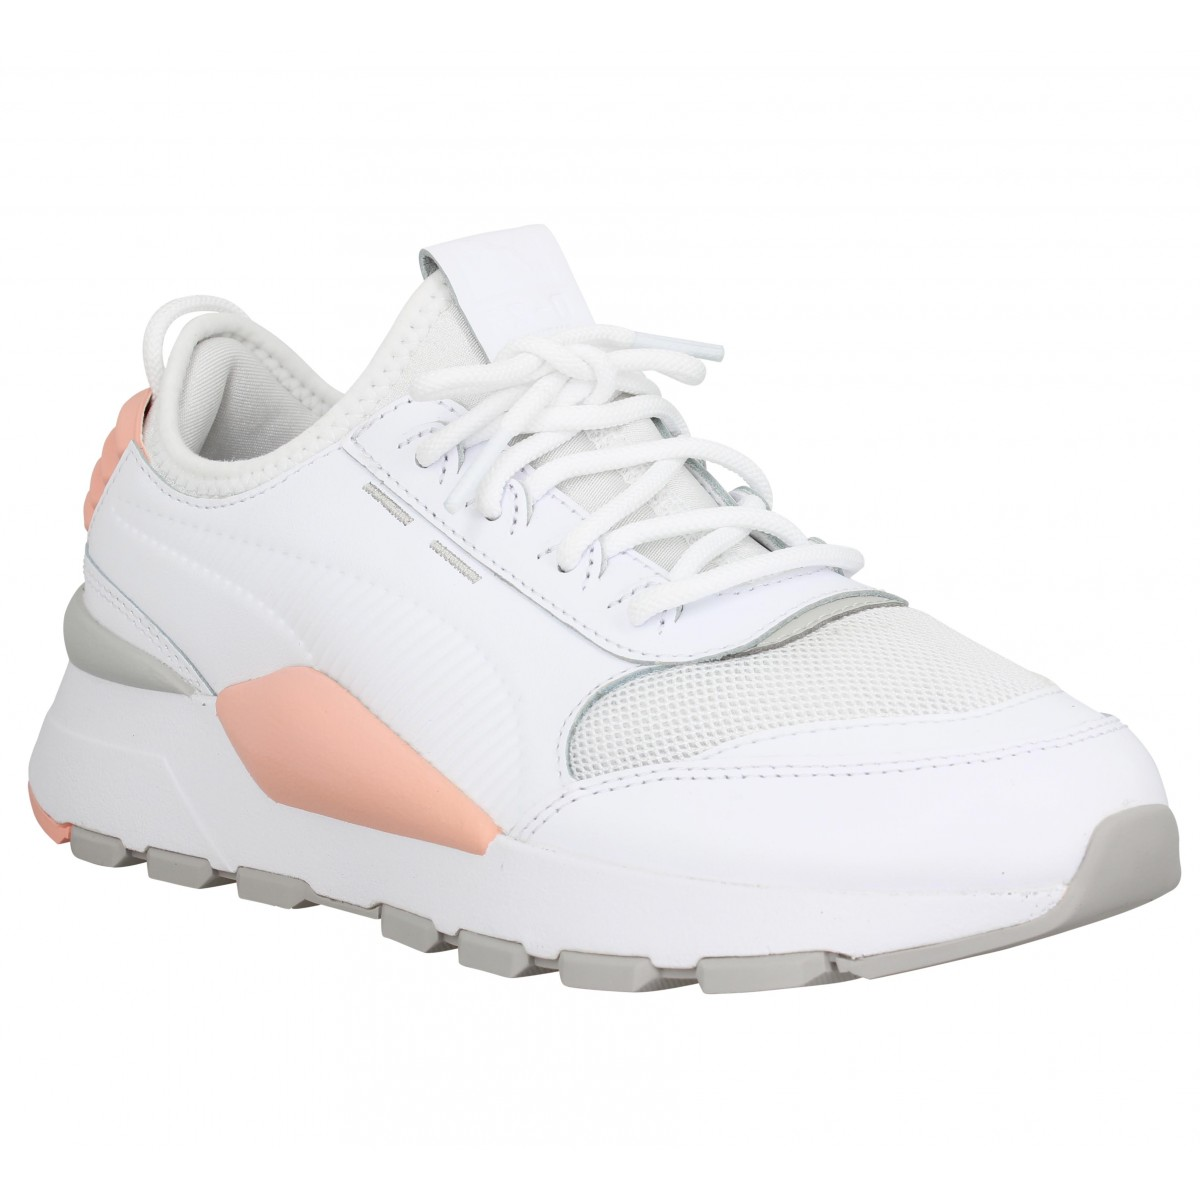 Toile Blanc Puma Rs 0 Sound Rose Femme XZiTPuOk